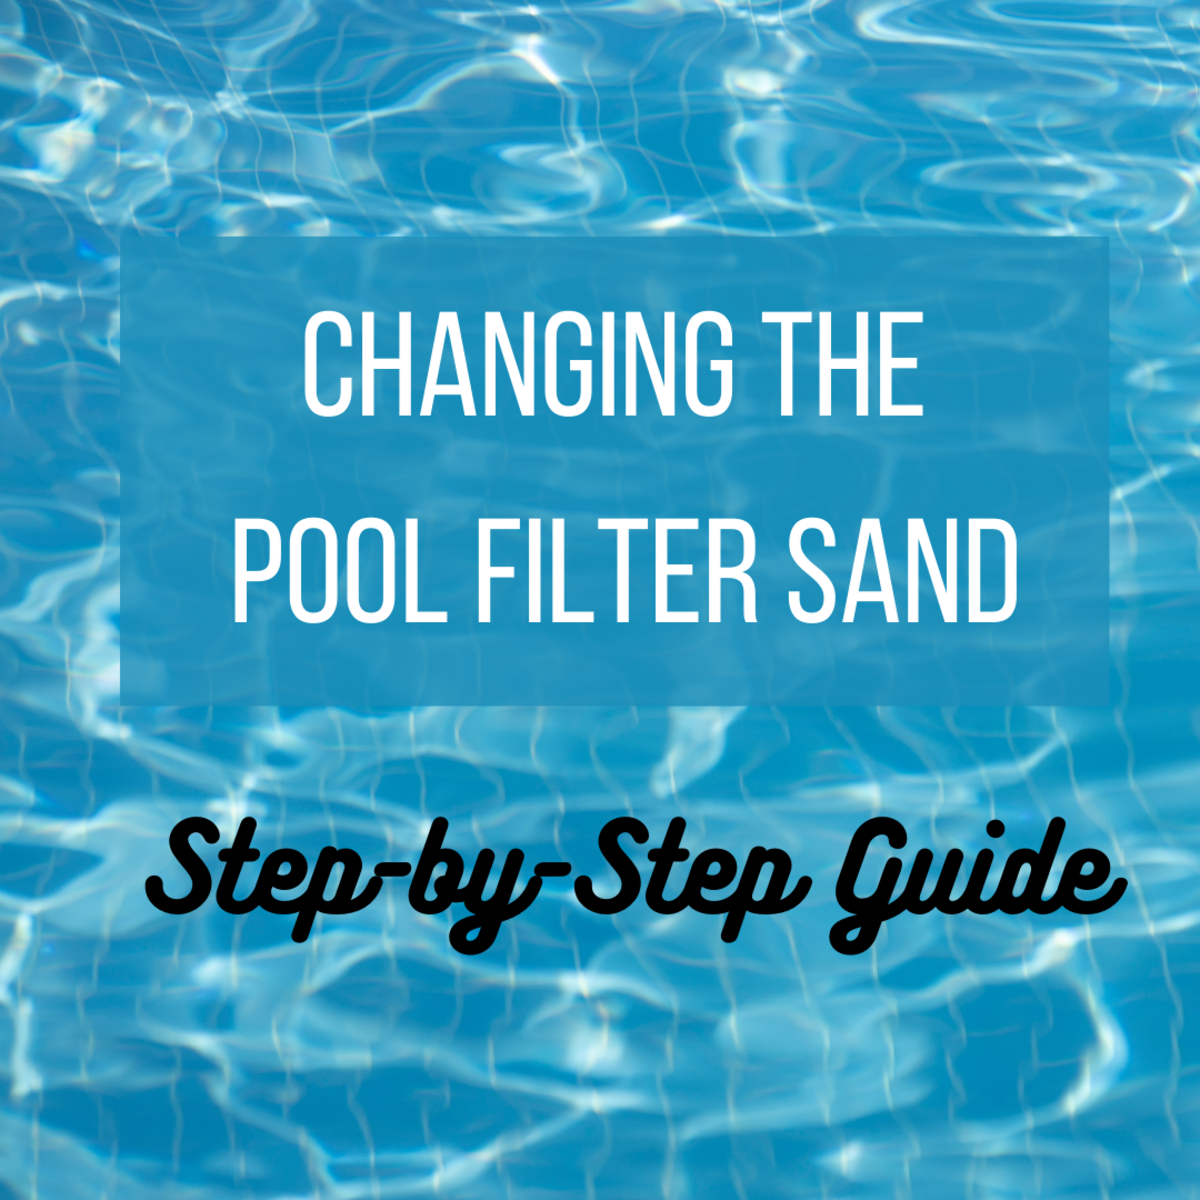 I'll show you how easy it is to change the sand in your pool filter